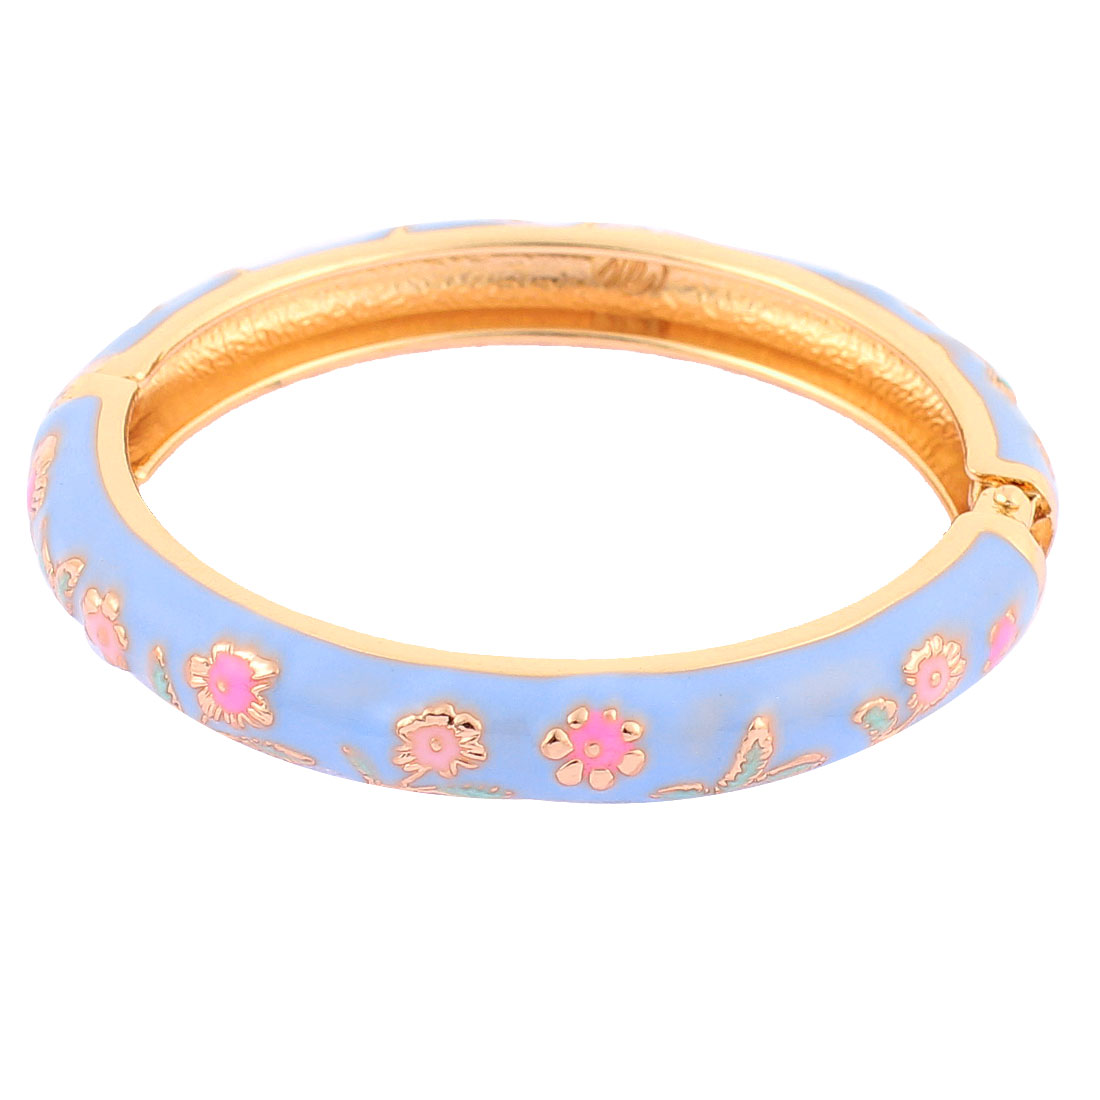 Girls Spring Closure Flower Ornament Round Wrist Bracelet Bangle Blue